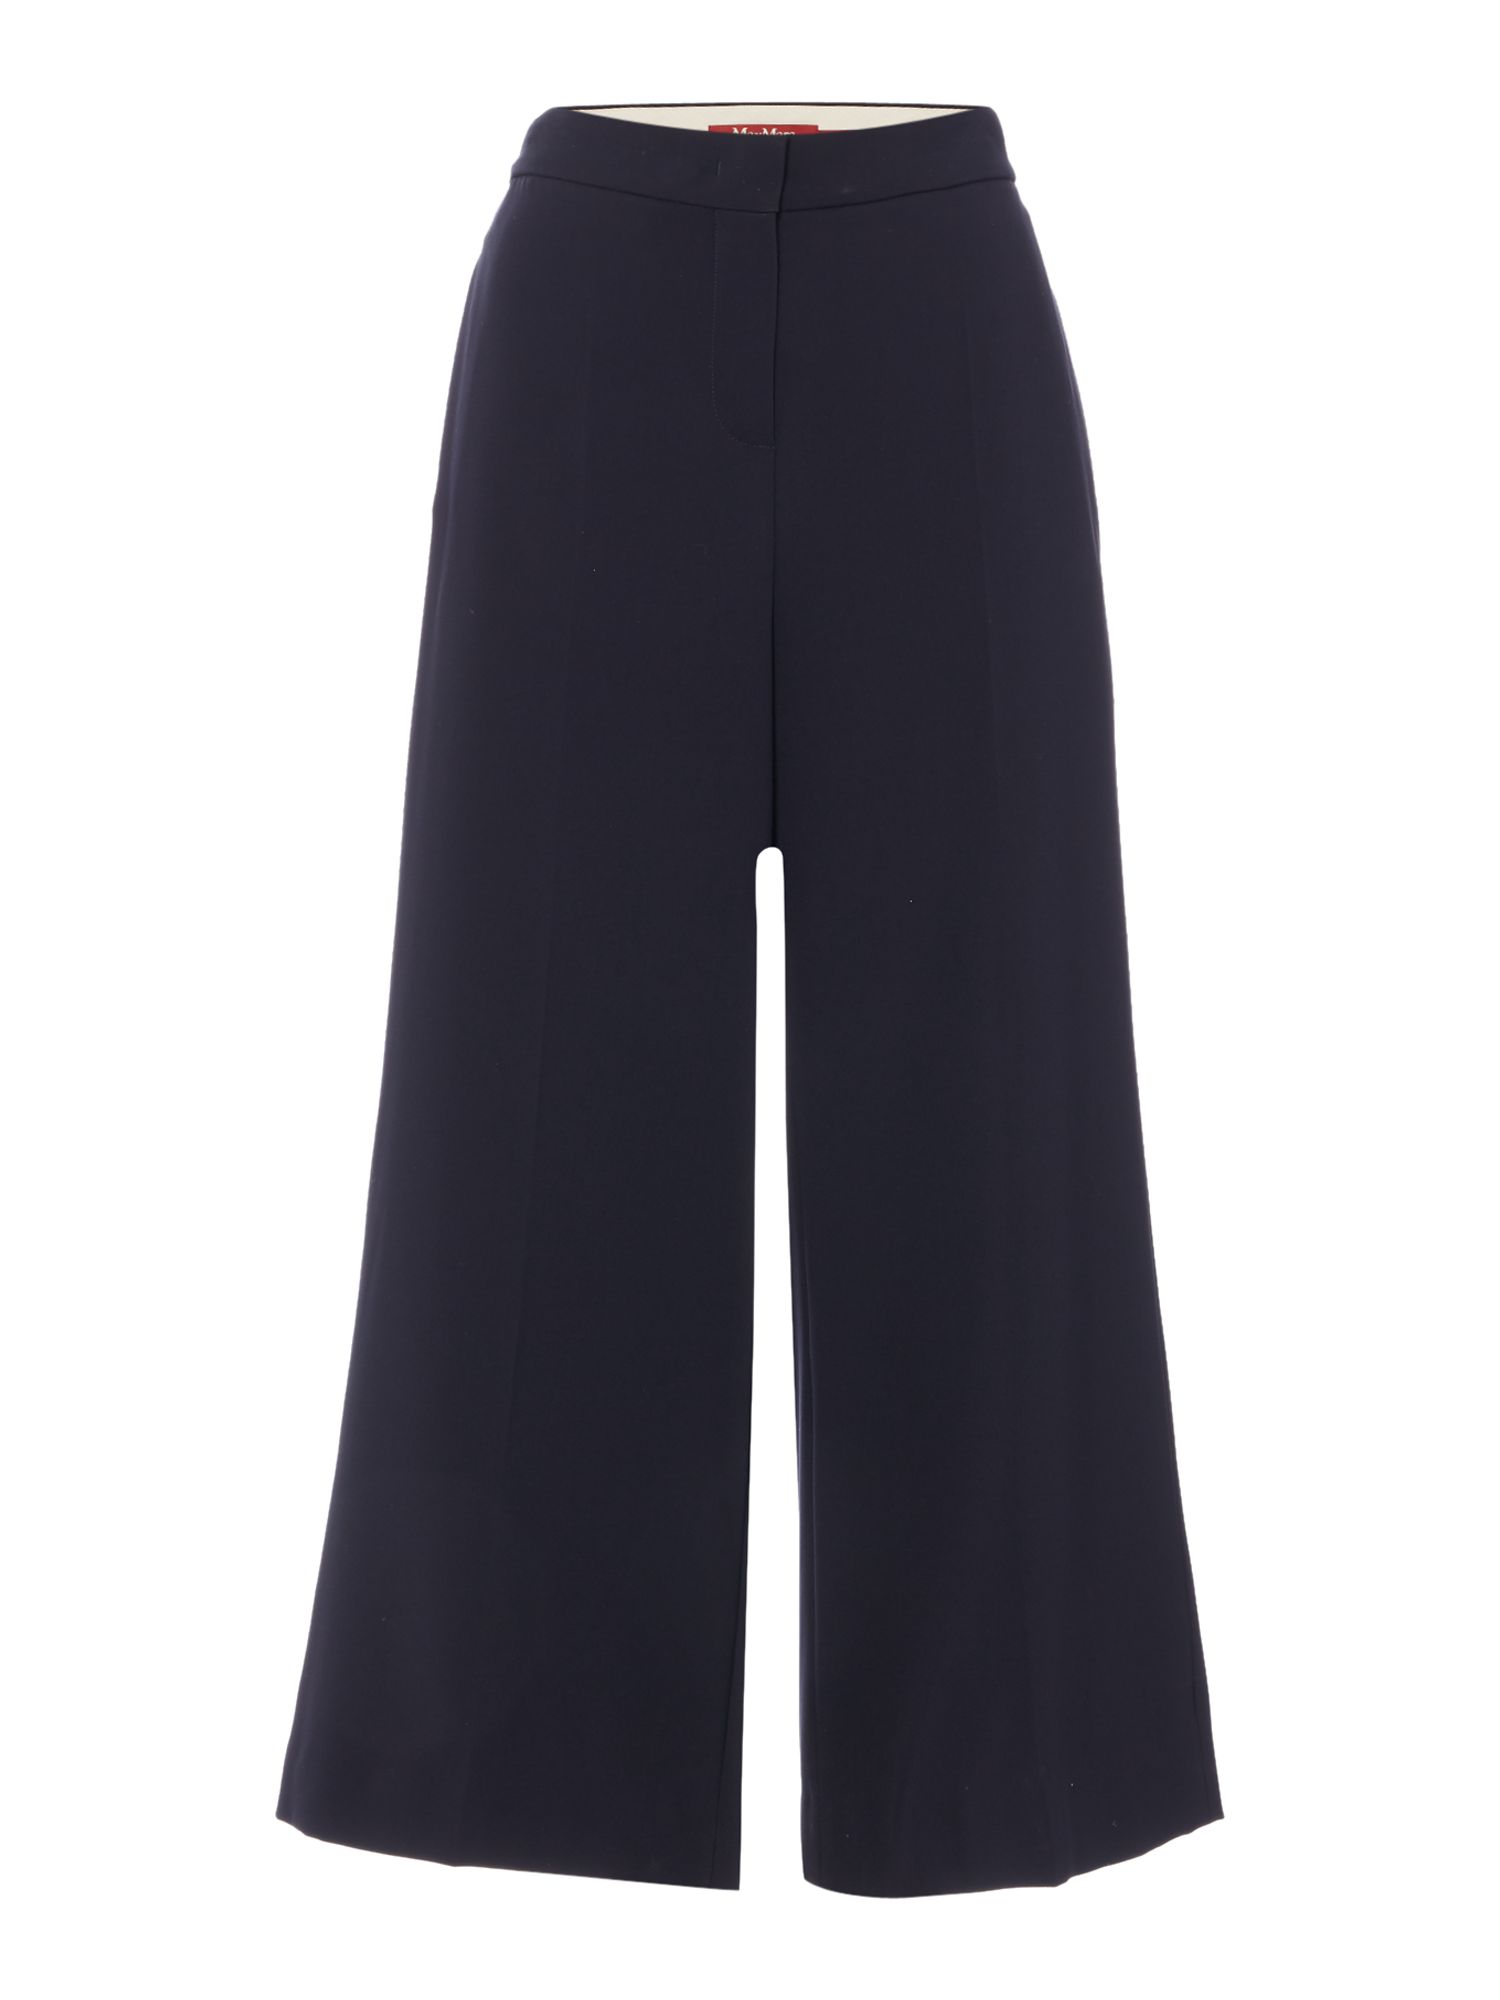 Max Mara Studio Emma cigarette ankle length trouser, Black